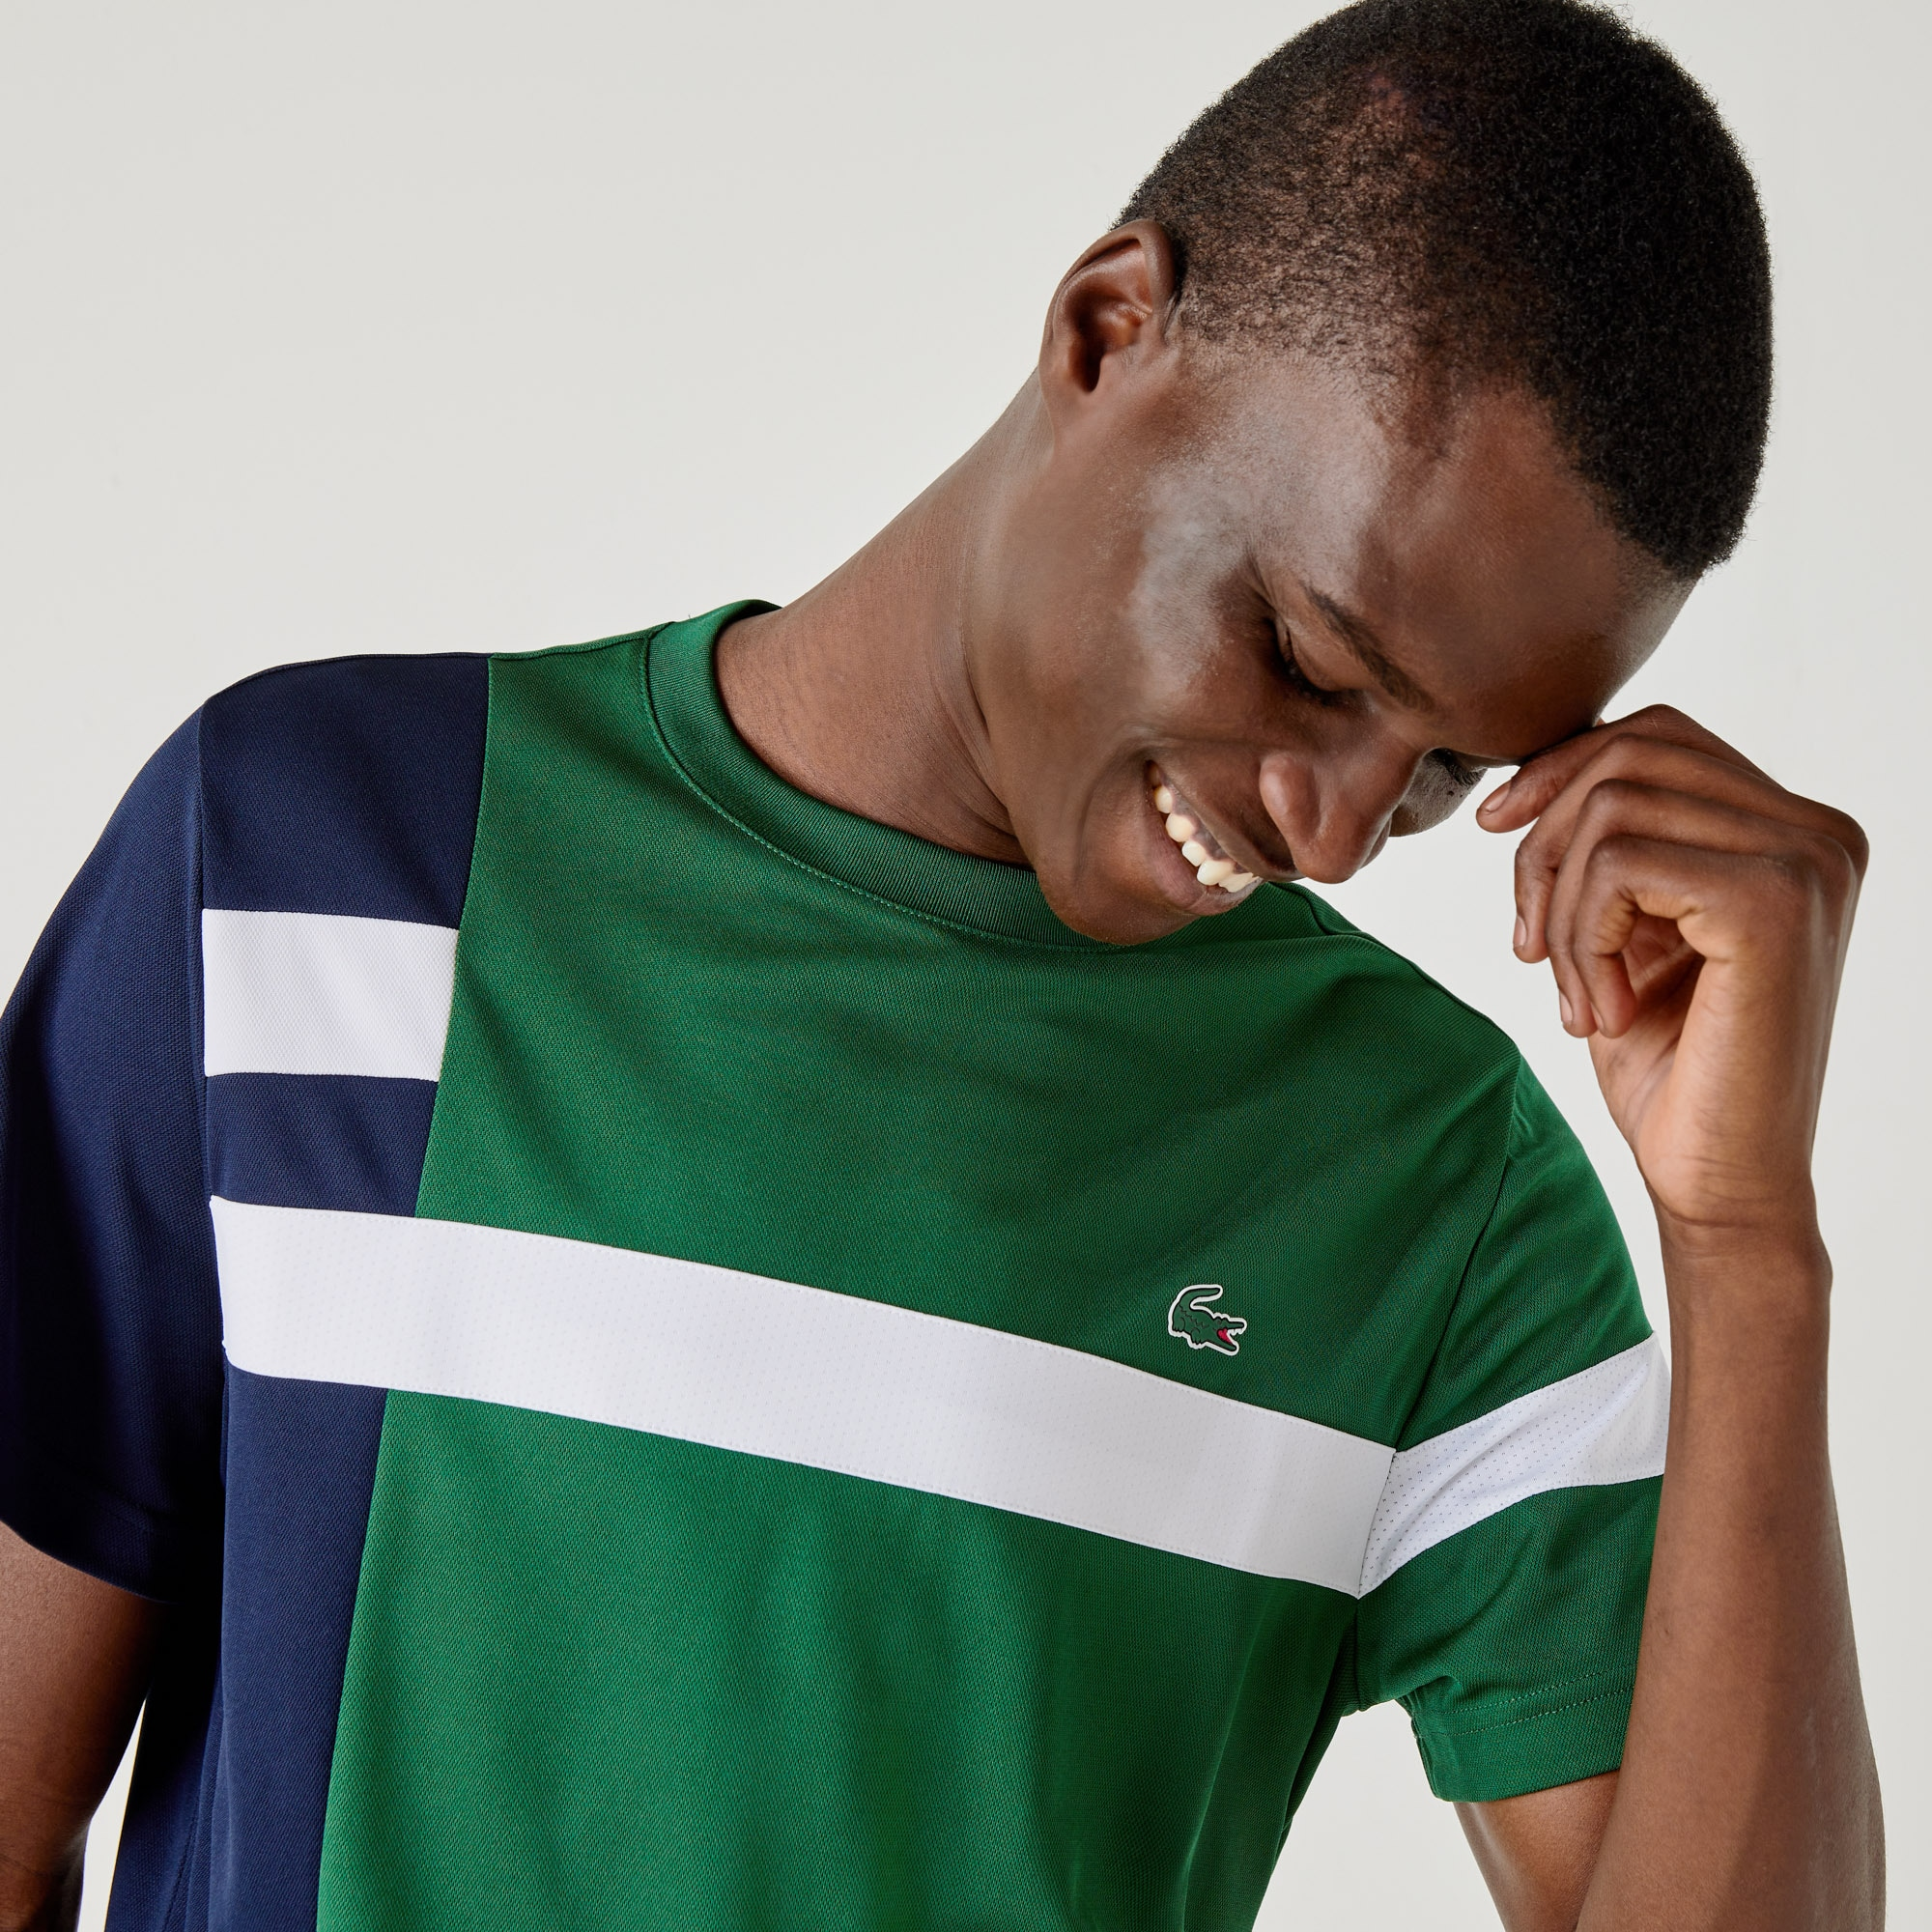 Lacoste Men's Sport Colorblock Breathable Piqué Tennis T-shirt In Green,navy Blue,white